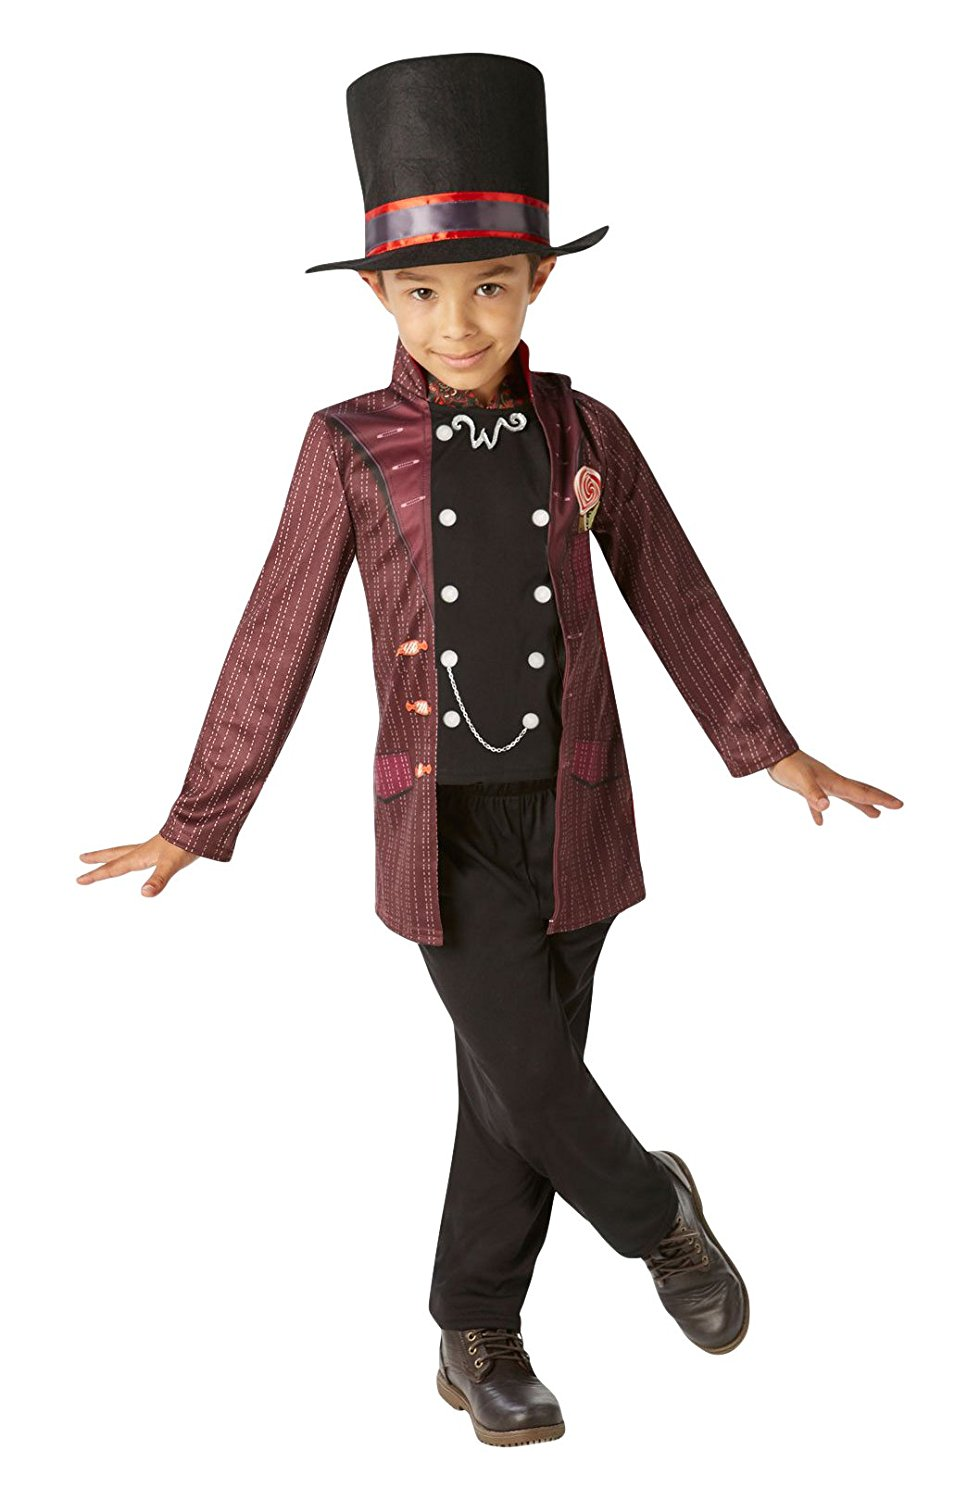 Willy Wonka costume 620749